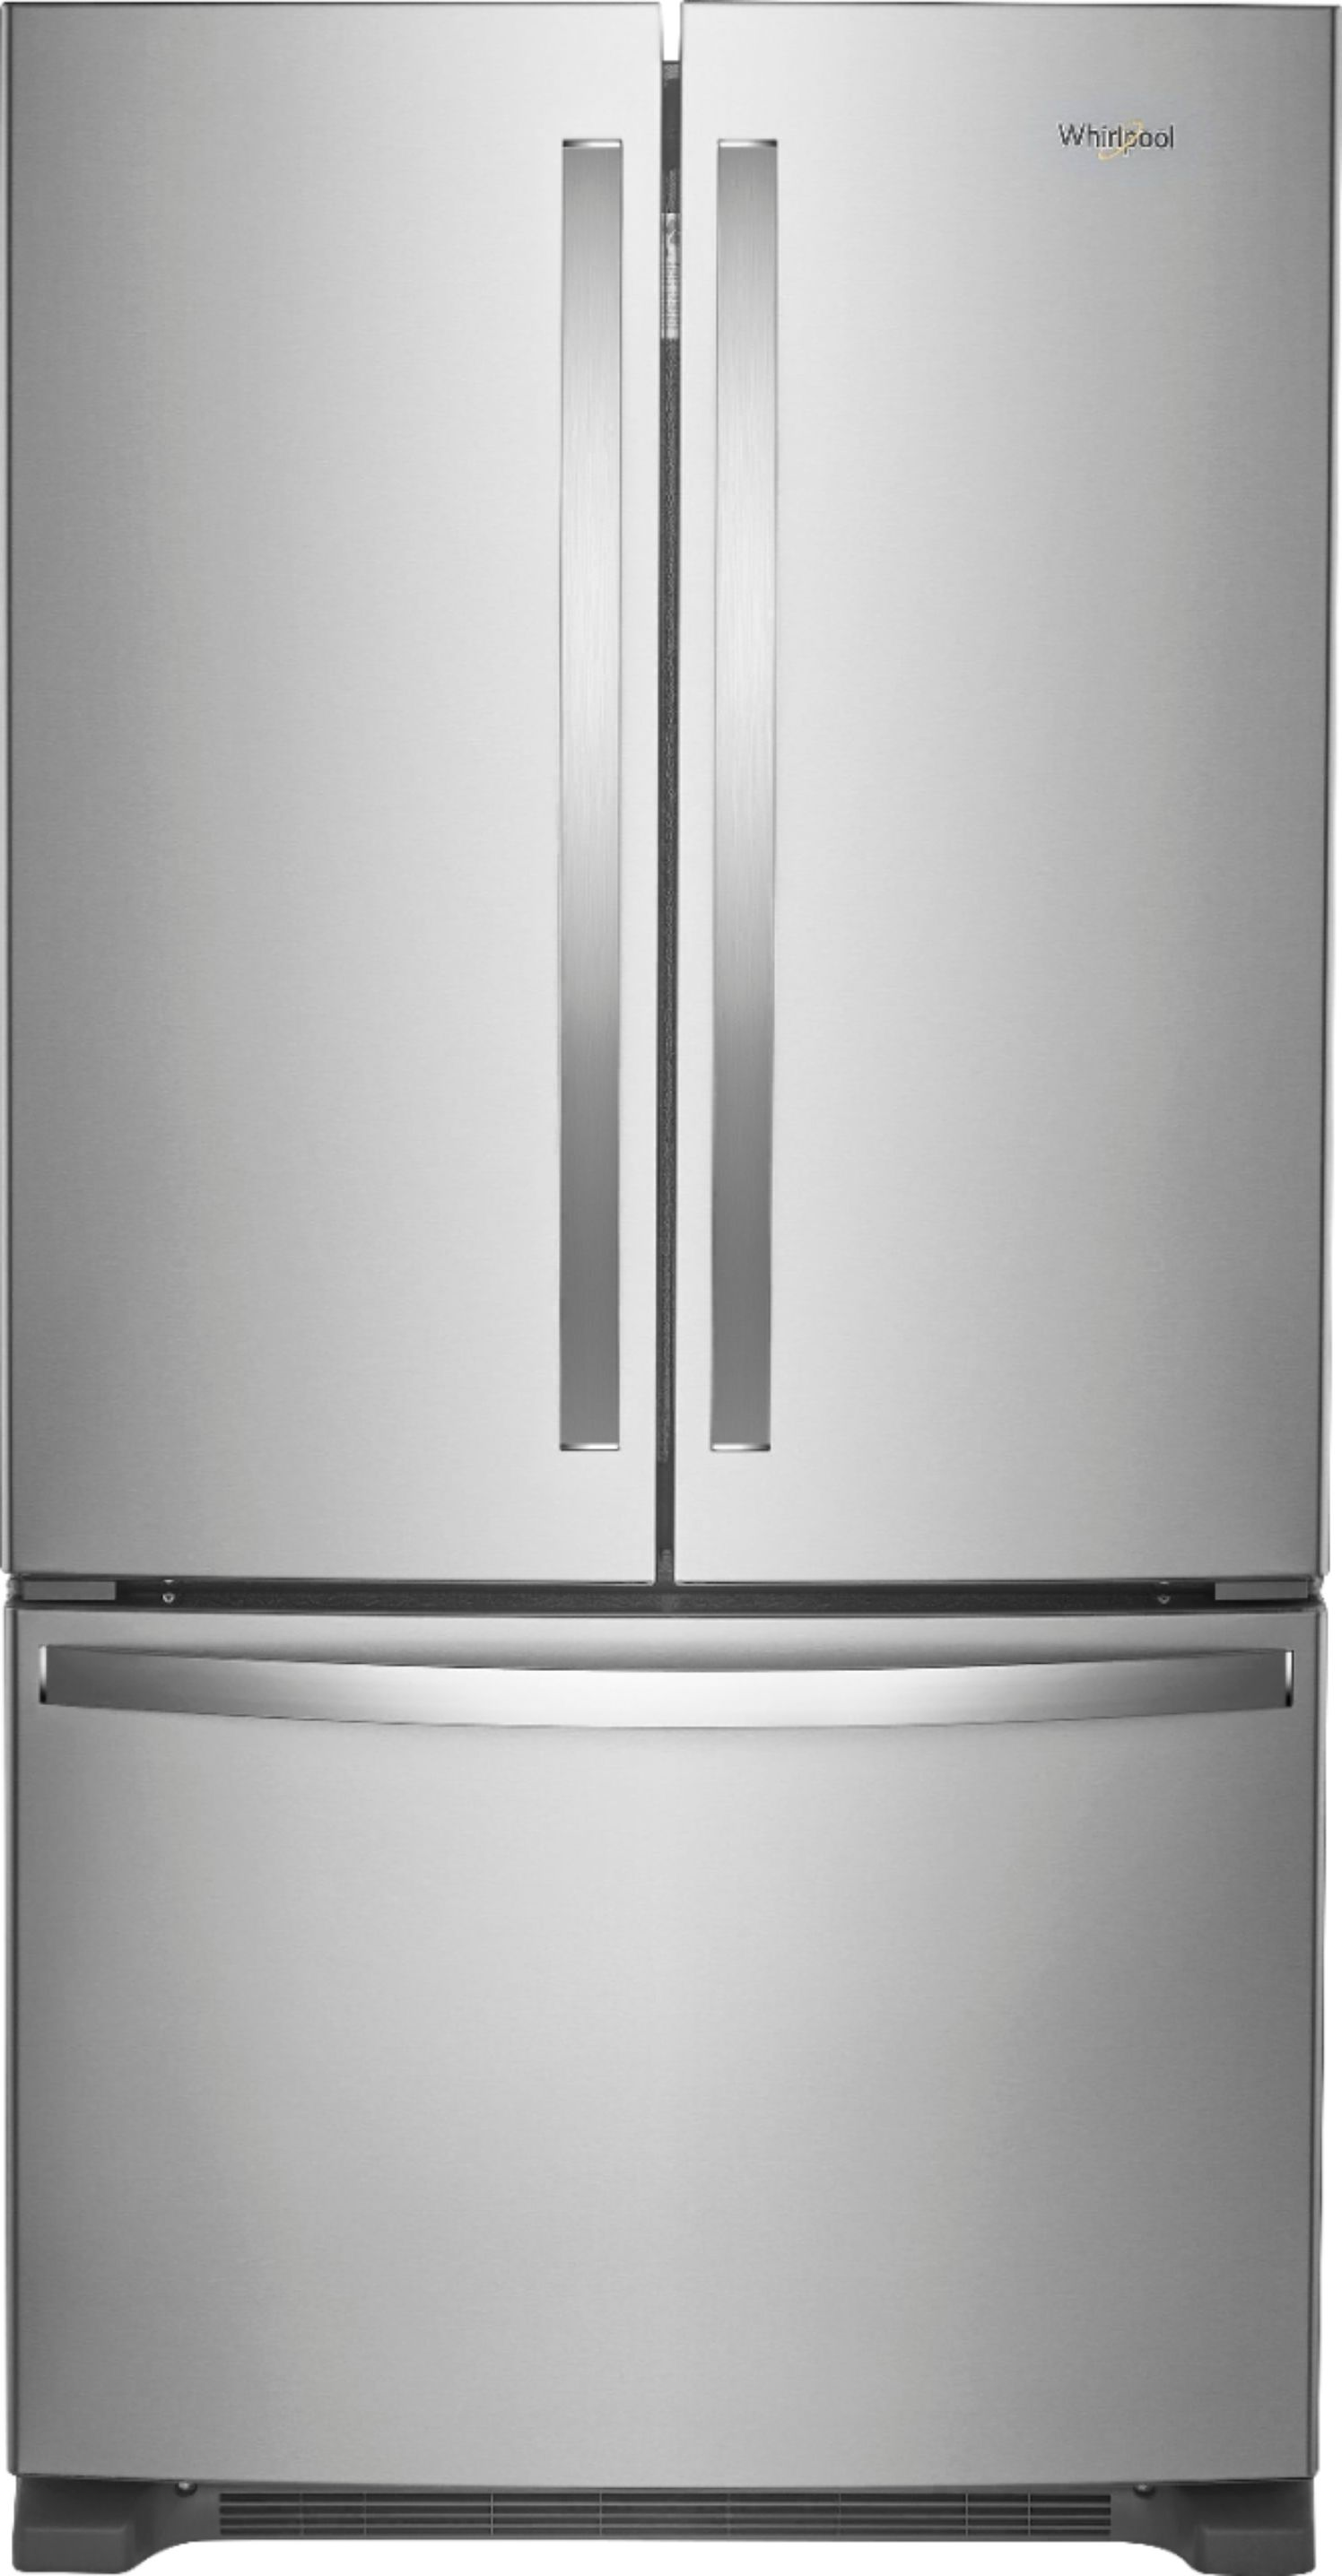 Whirlpool Appliances Canada Whirlpool 25 2 Cu Ft French Door Refrigerator With Internal Water Dispenser Stainless Steel